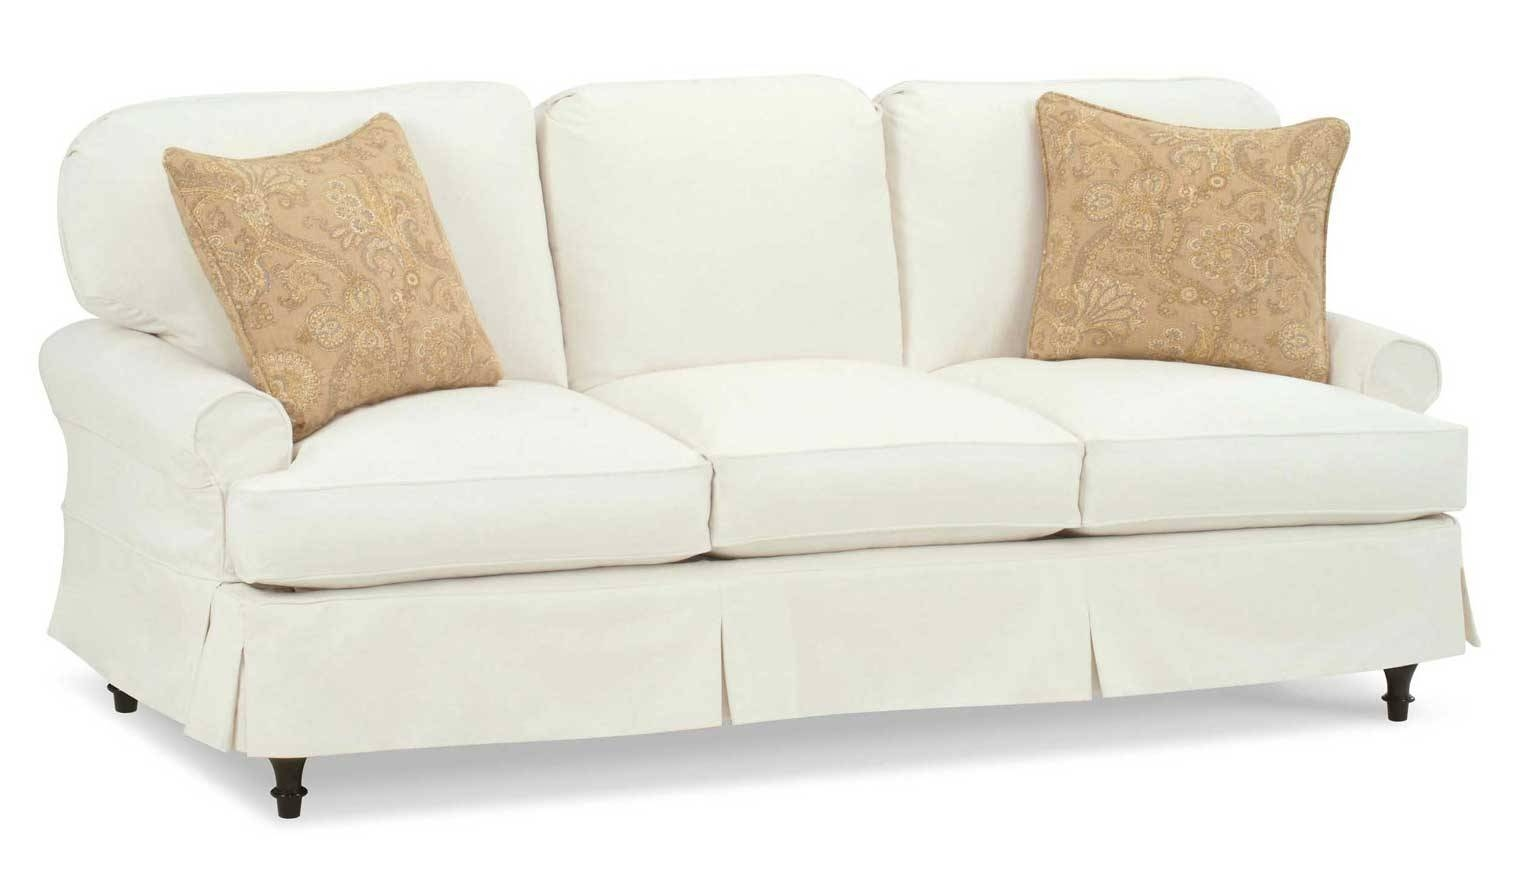 Farmhouse And Country Furniture | Cottage Home® throughout Country Style Sofas (Image 6 of 15)